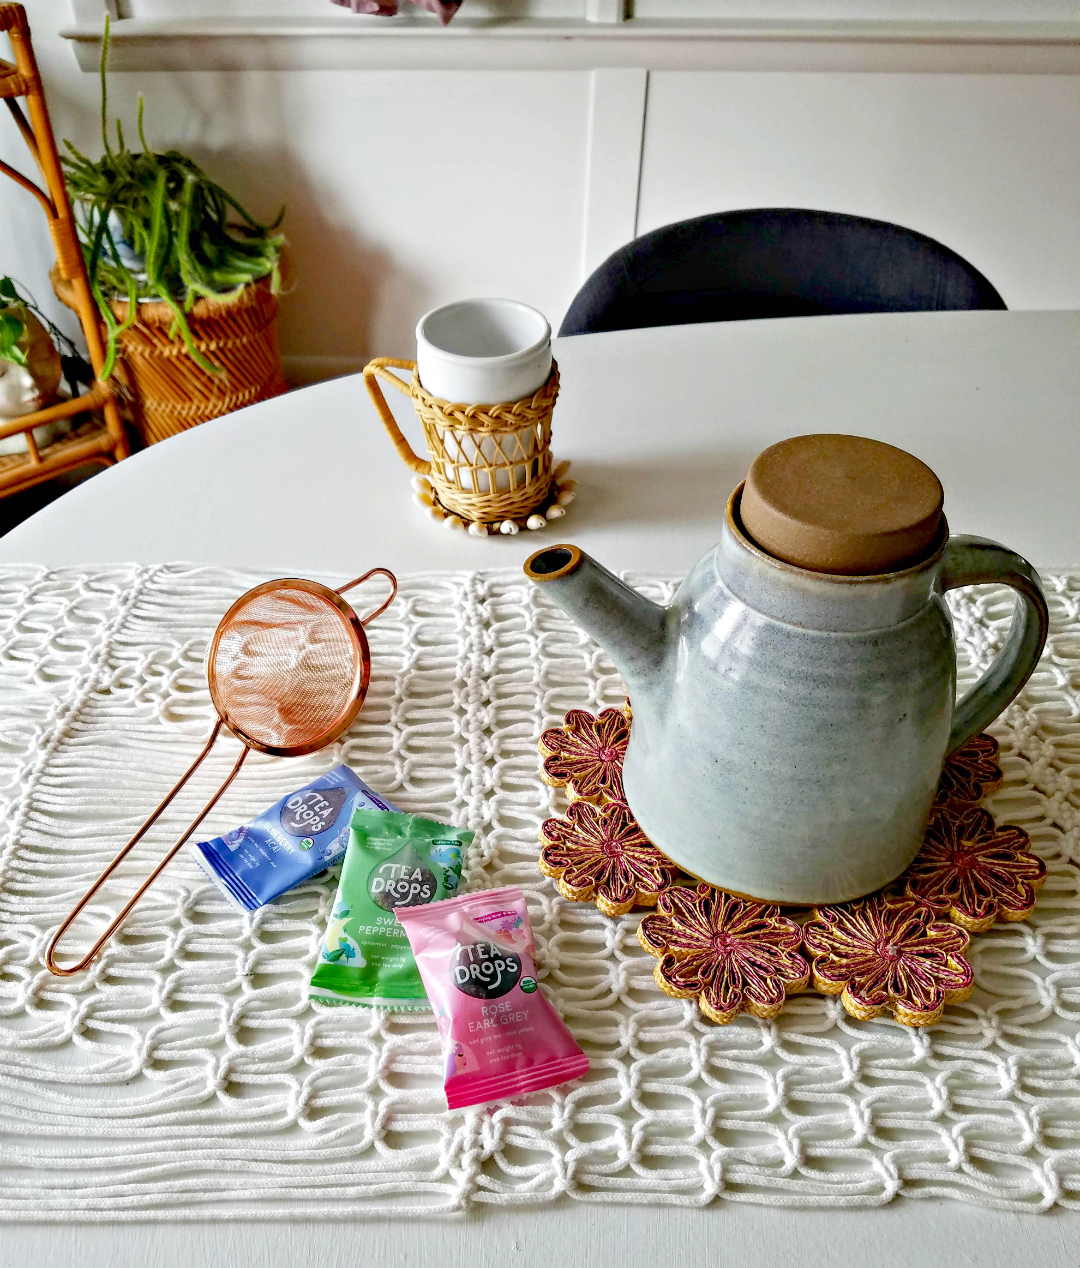 Simple Ways To Enjoy Being Home  - Tea Time - TheBohoAbode